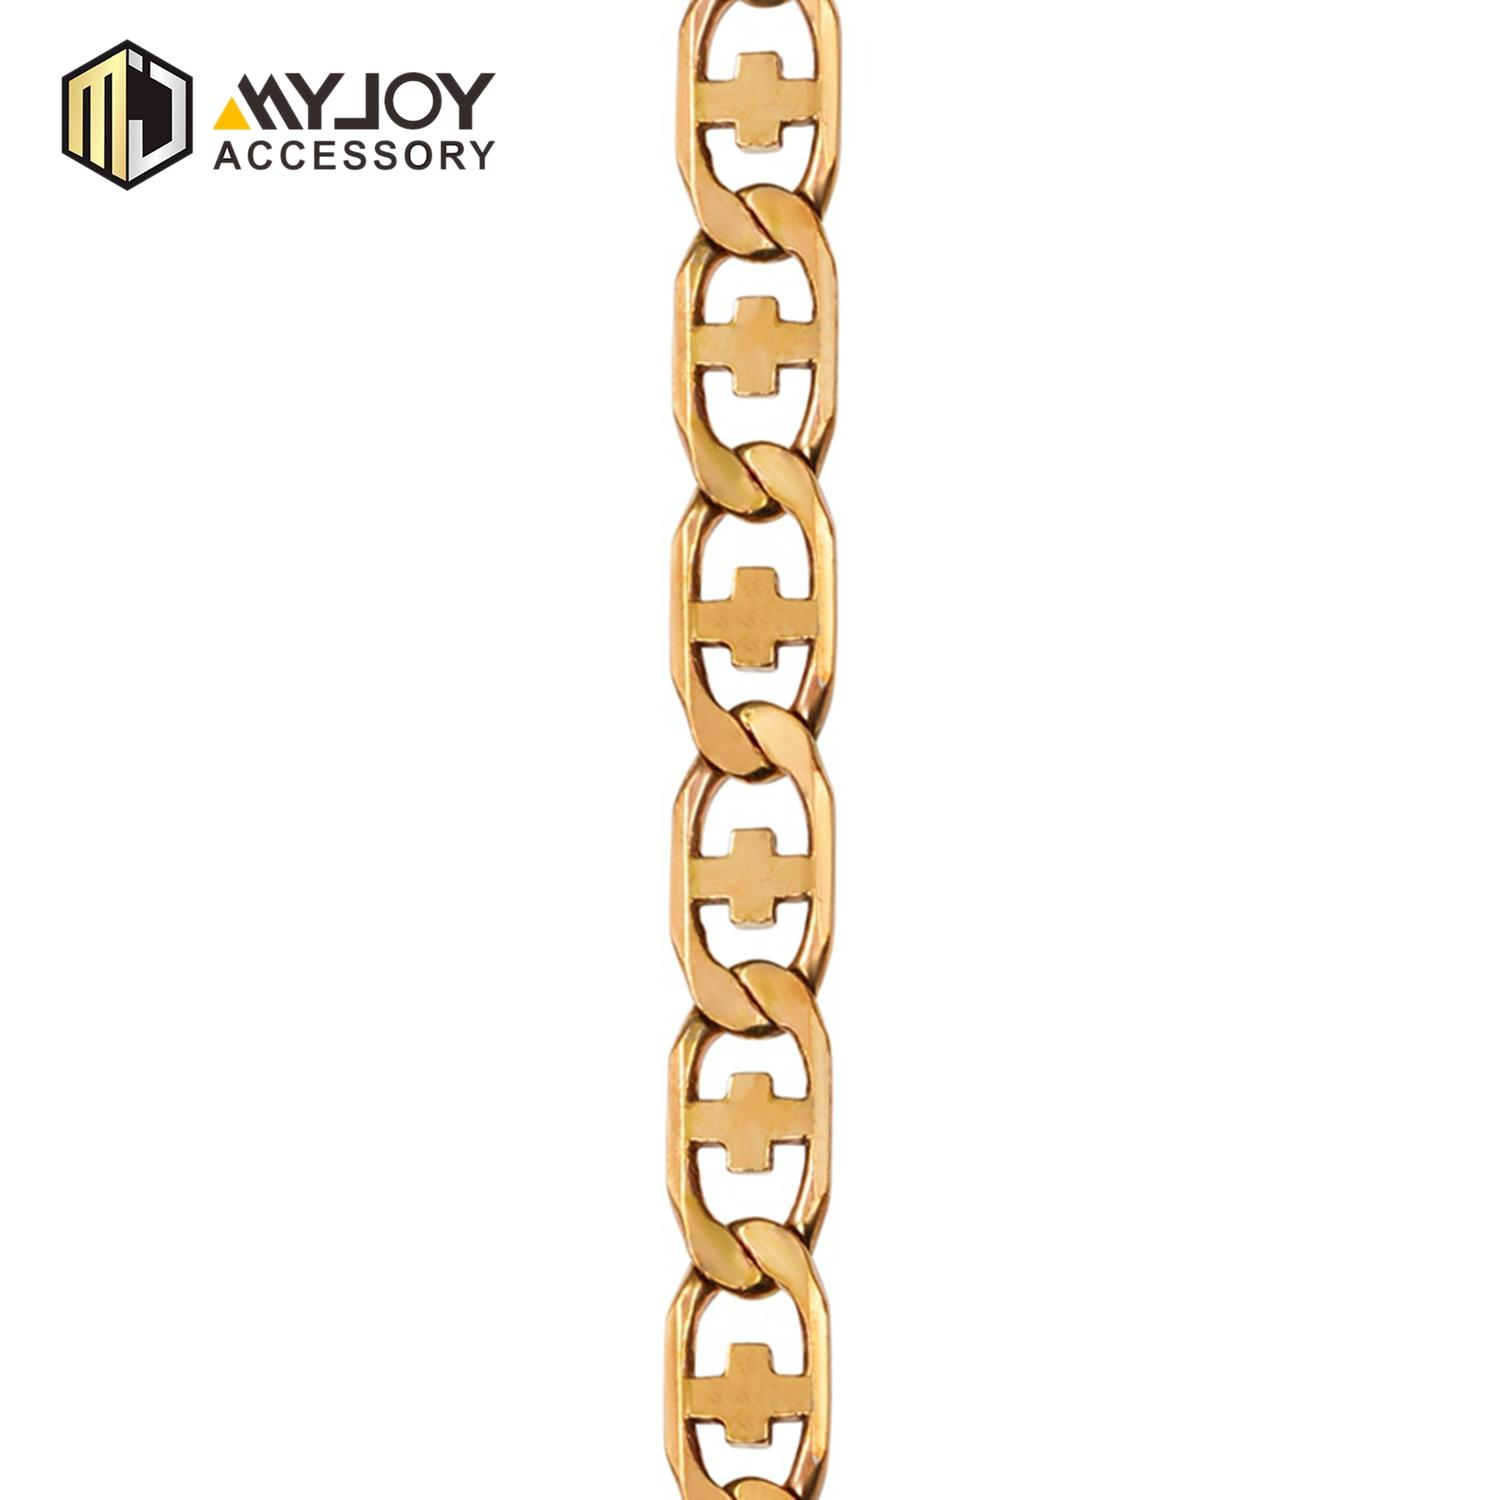 MYJOY New strap chain for sale for purses-2